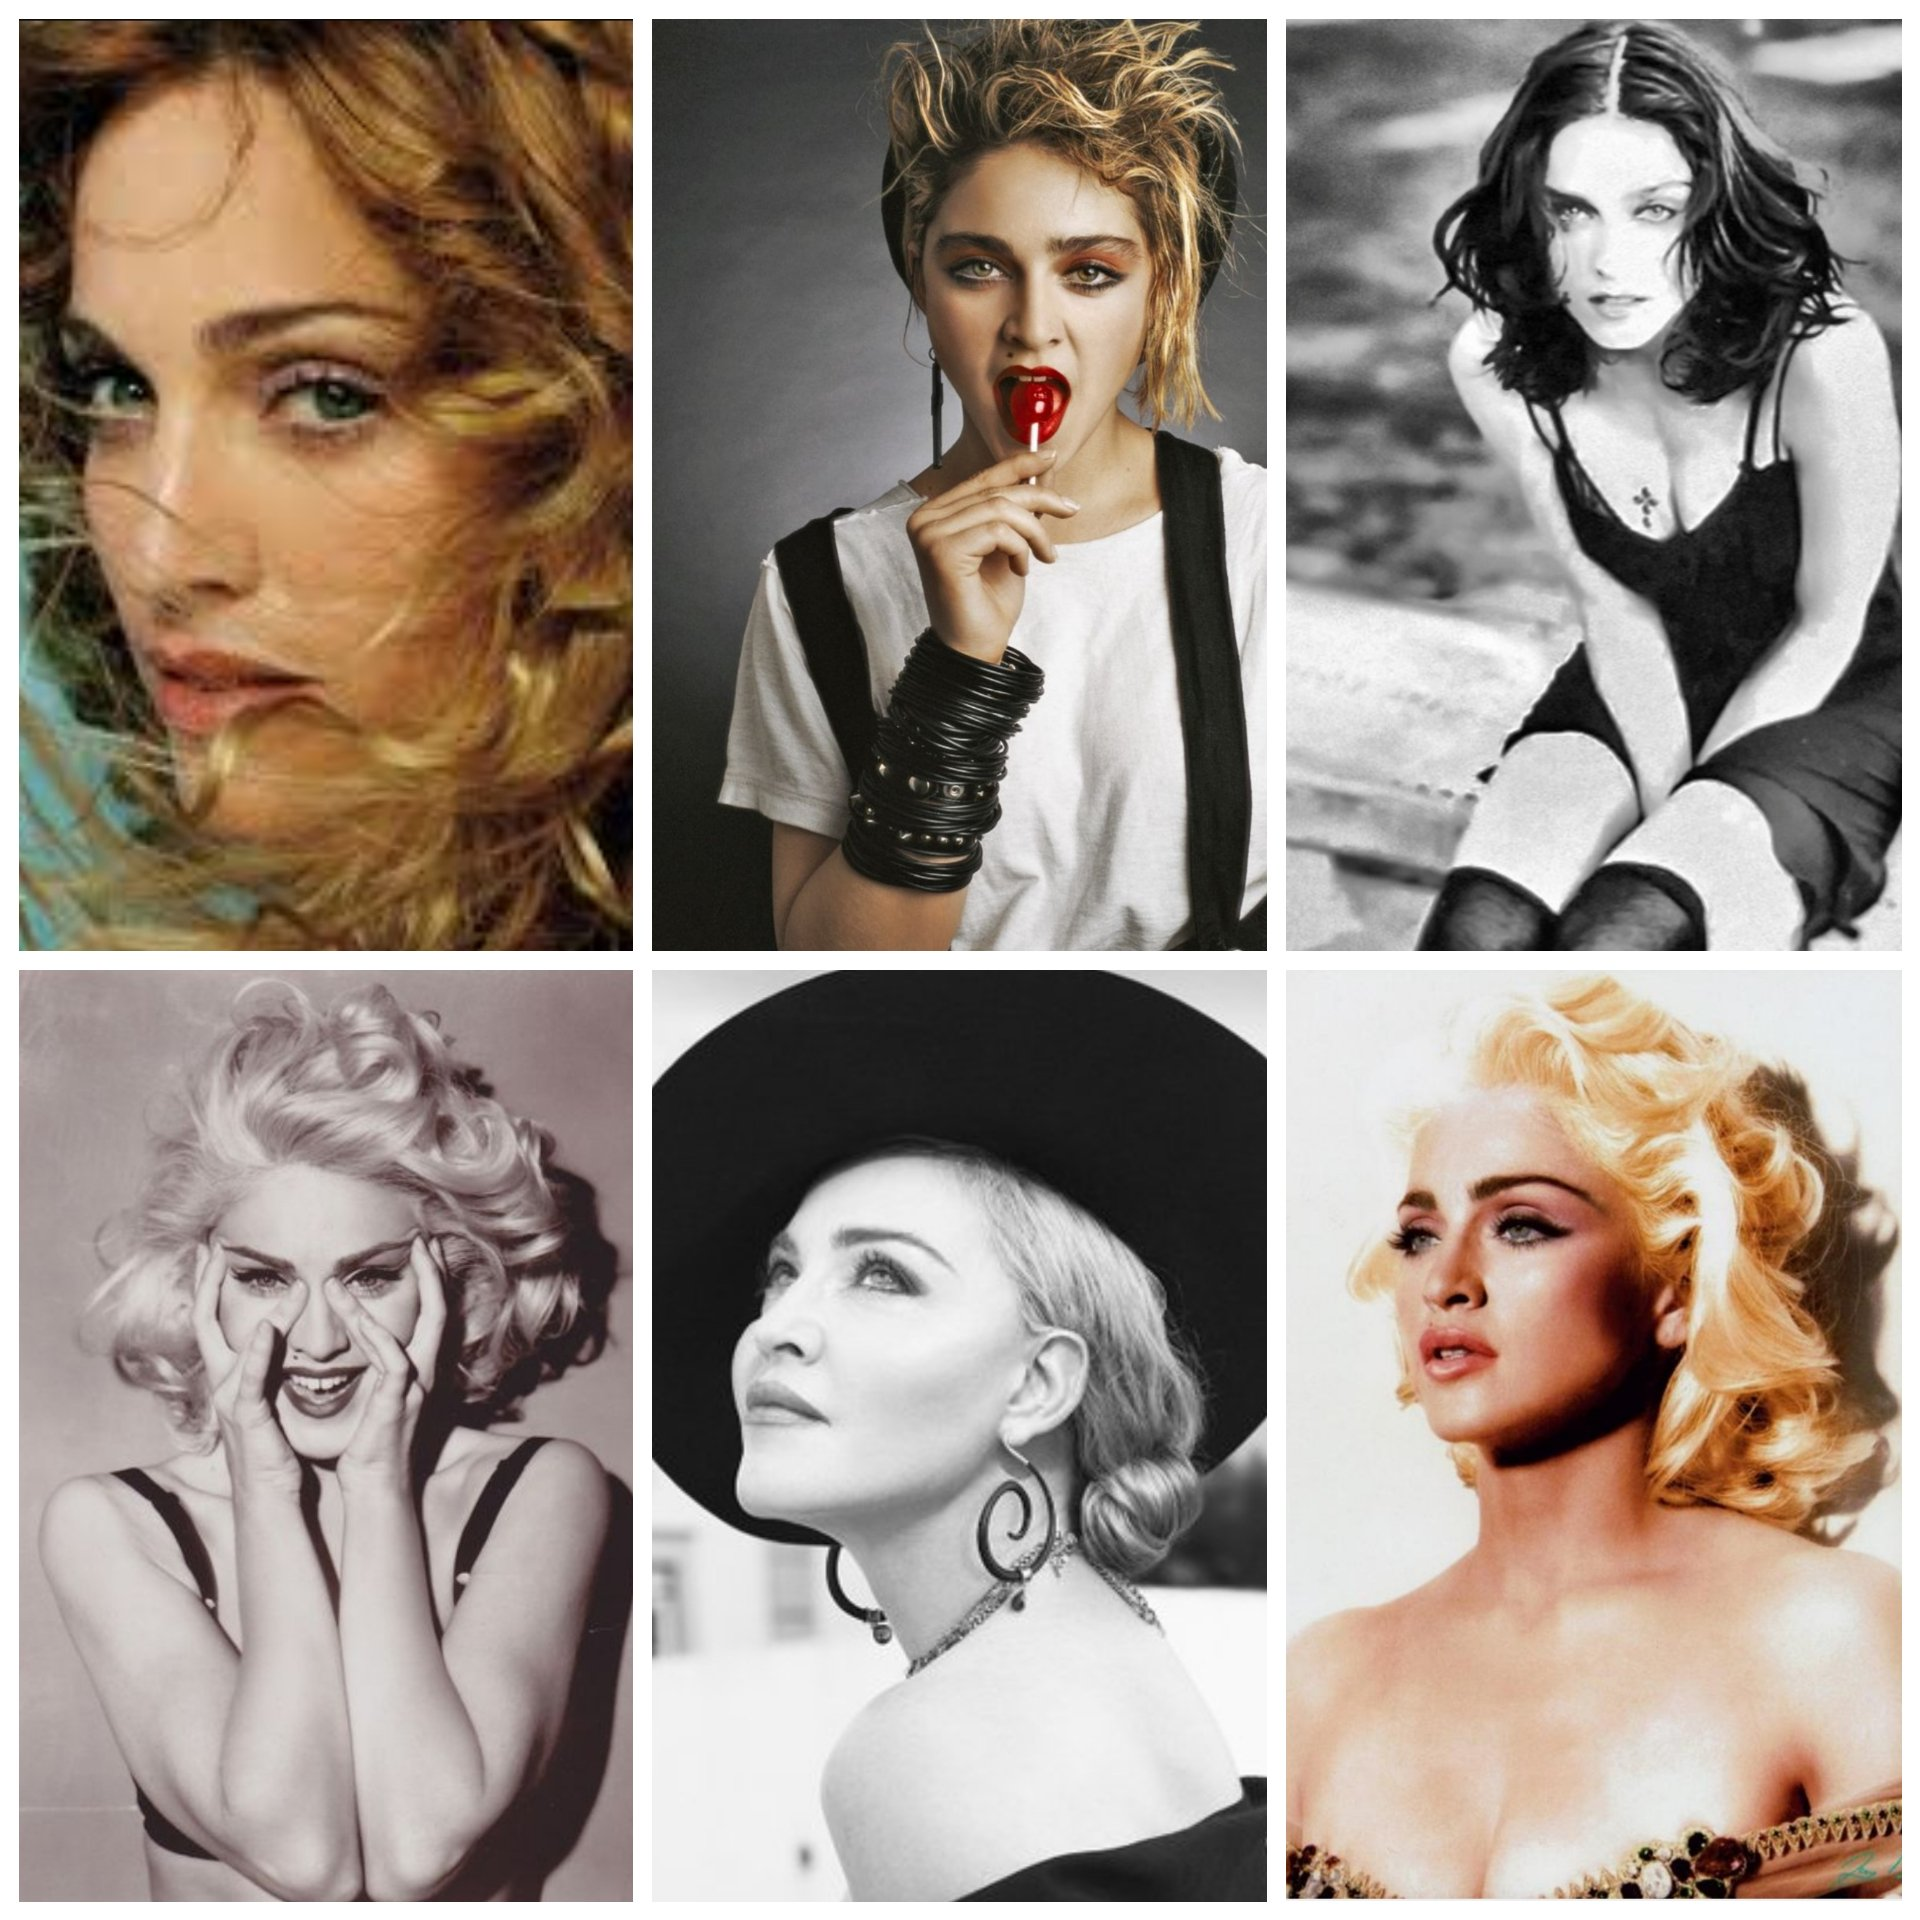 Happy 60th birthday, Madonna! Thanks for all the incredible music and constant inspiration